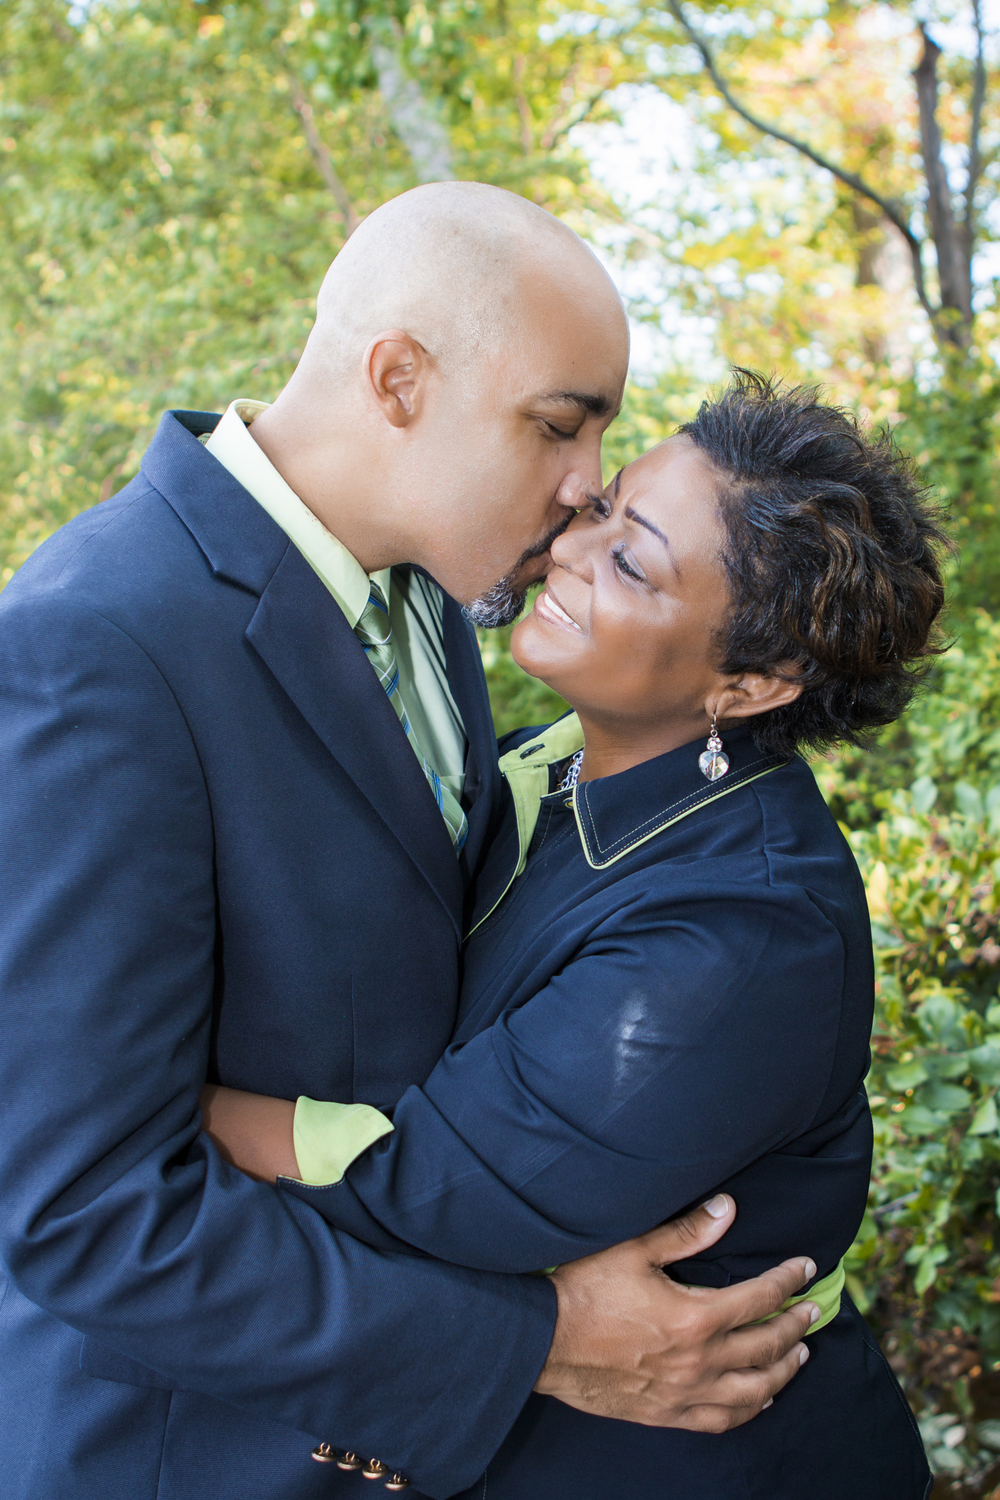 Couples Photography in Greensboro, NC